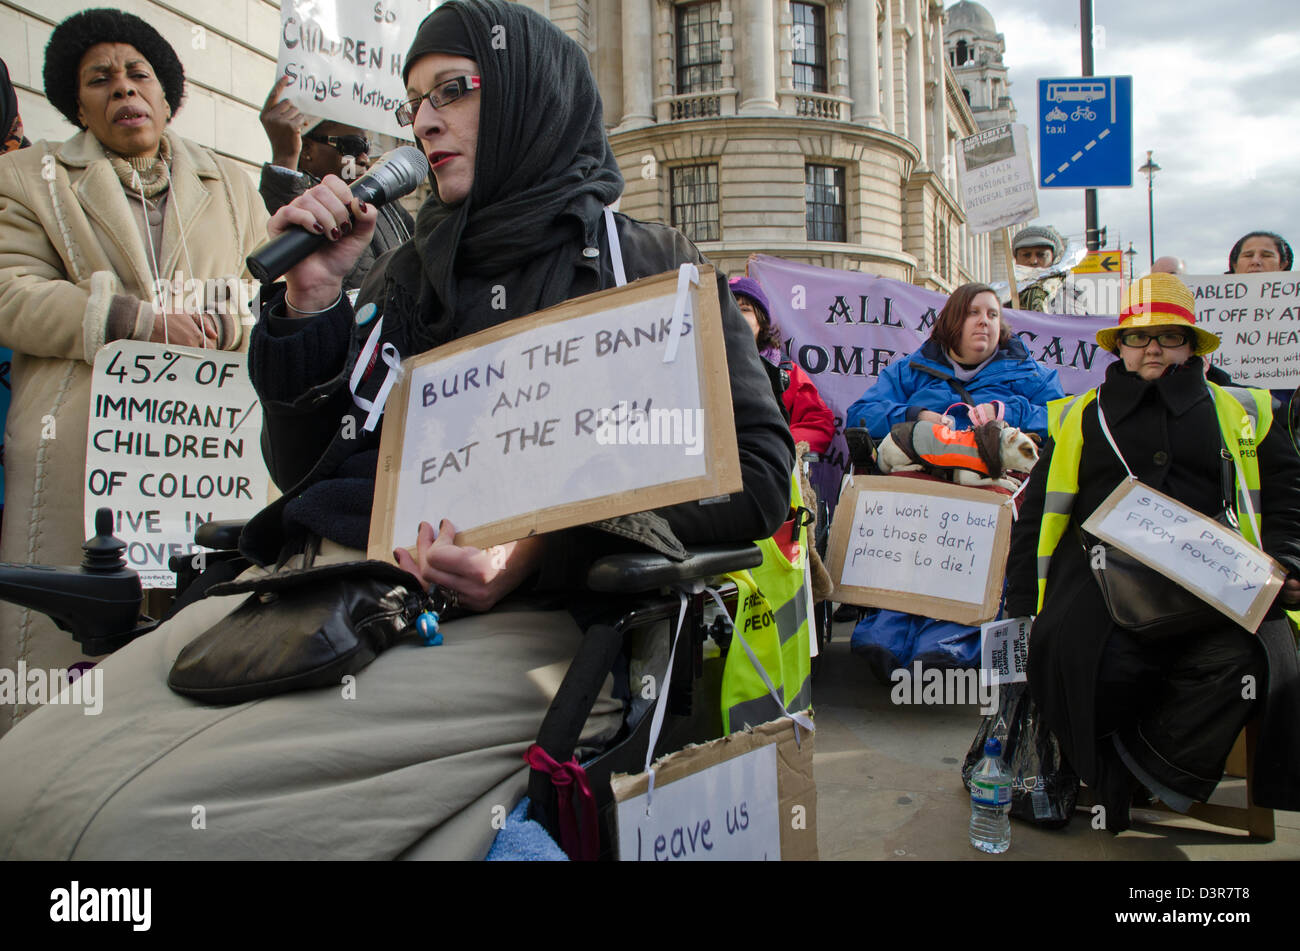 DISABILITY GROUP PROTESTING LATEST FUNDING AND BENEFIT CUTS - Stock Image